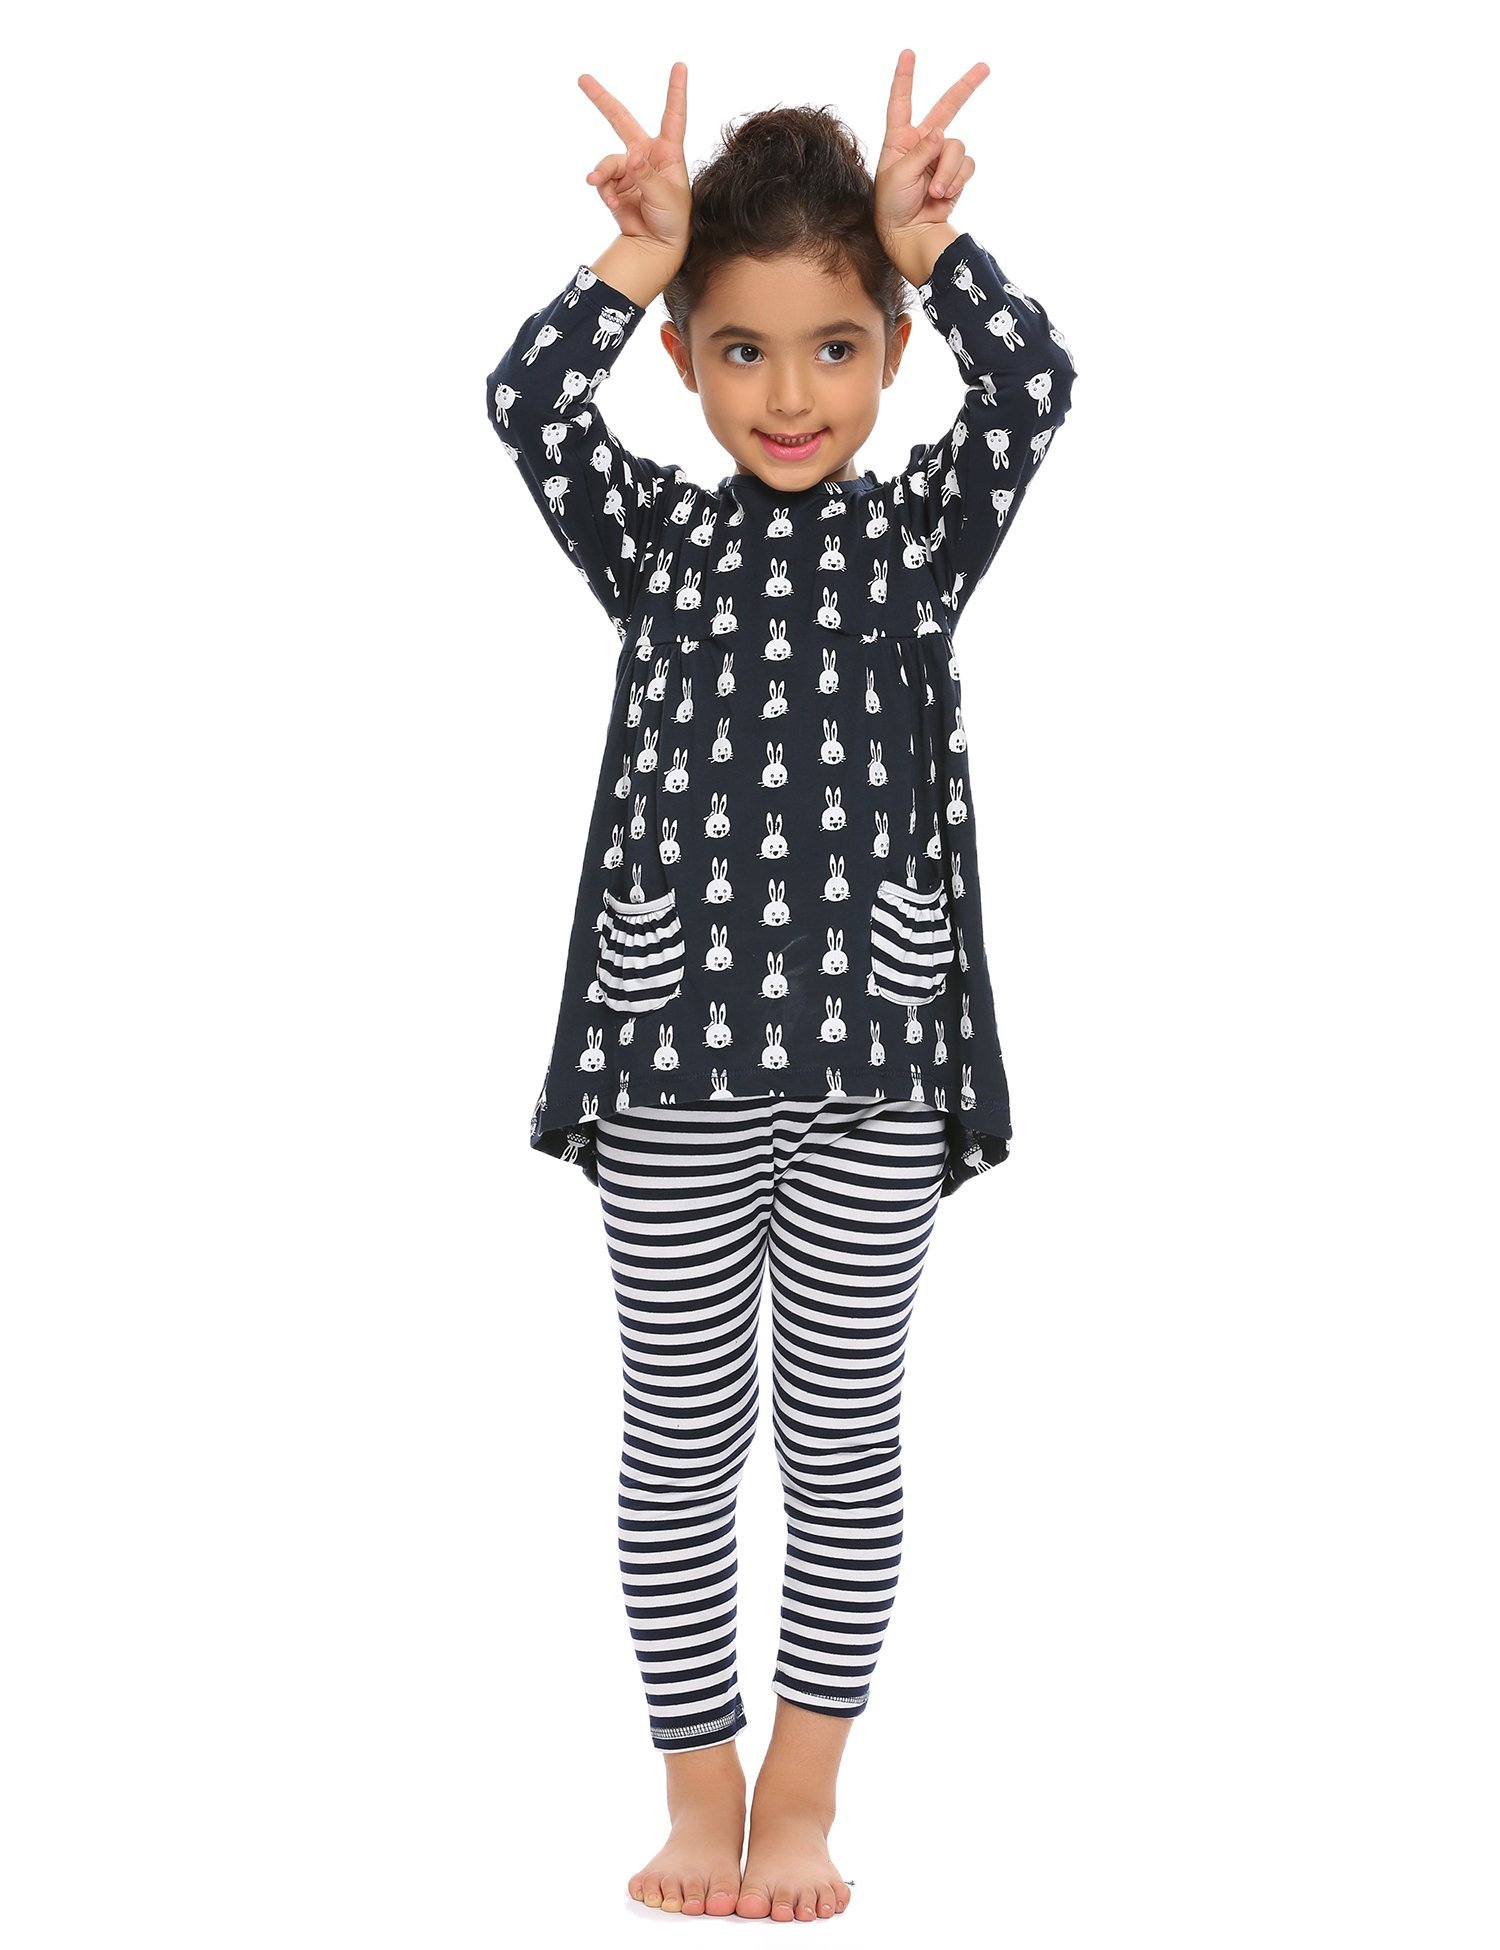 Arshiner Little Girls Long Sleeve Cute Rabbit Print with Pockets Cotton Outfit 12 pcs Pants Sets Top+Legging,Navy Blue,130(7-8years old) by Arshiner (Image #2)